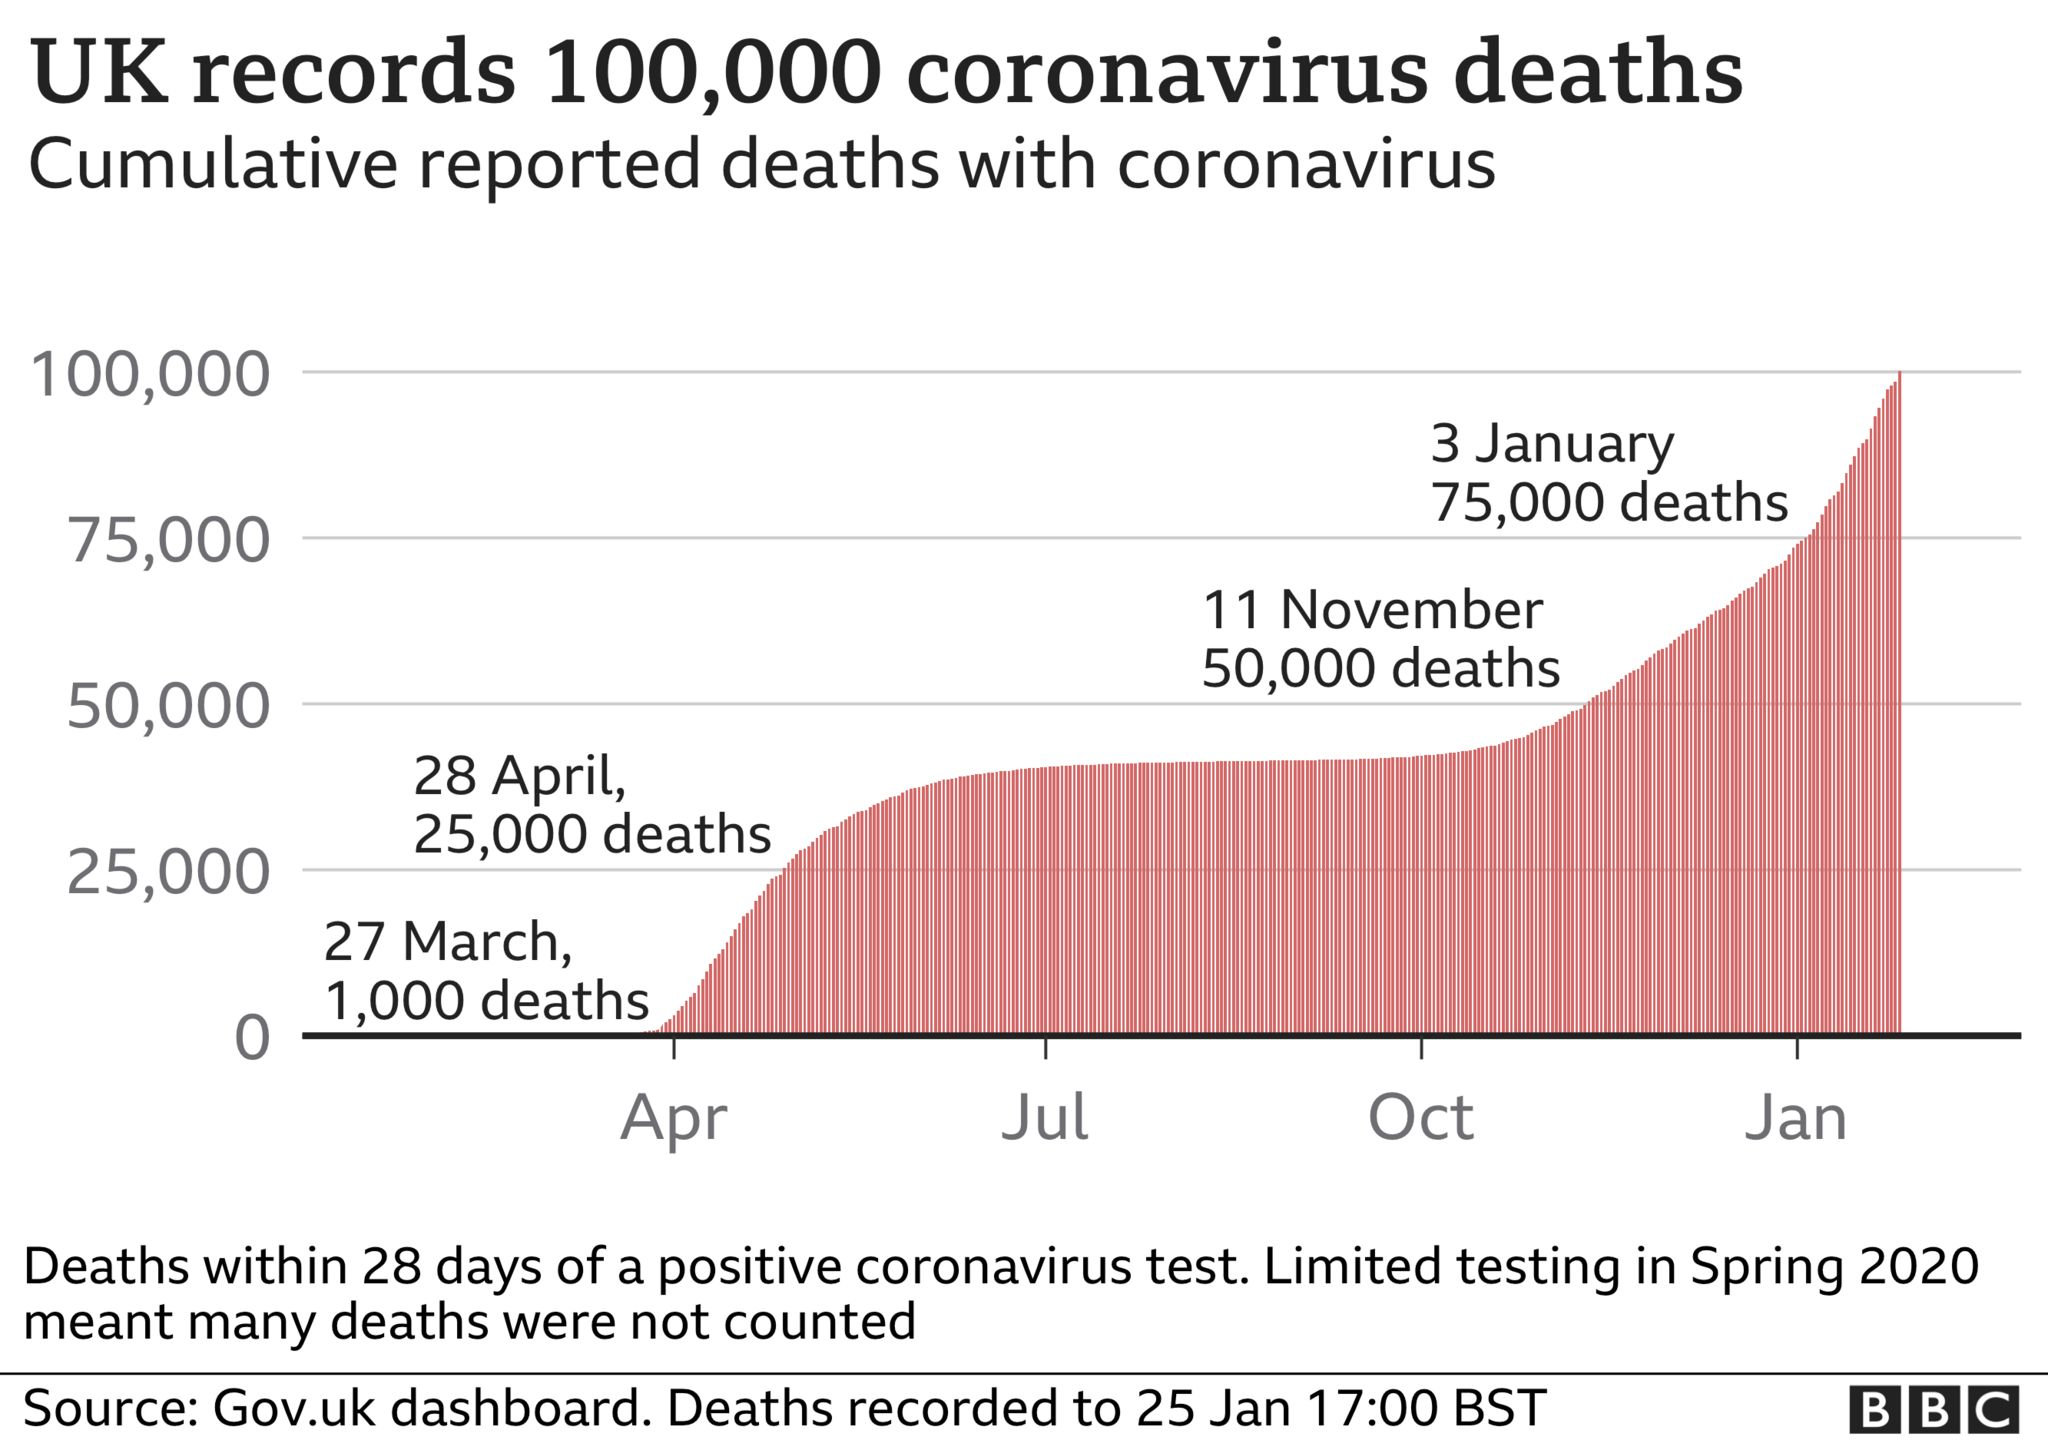 UK records 100,000 coronavirus deaths